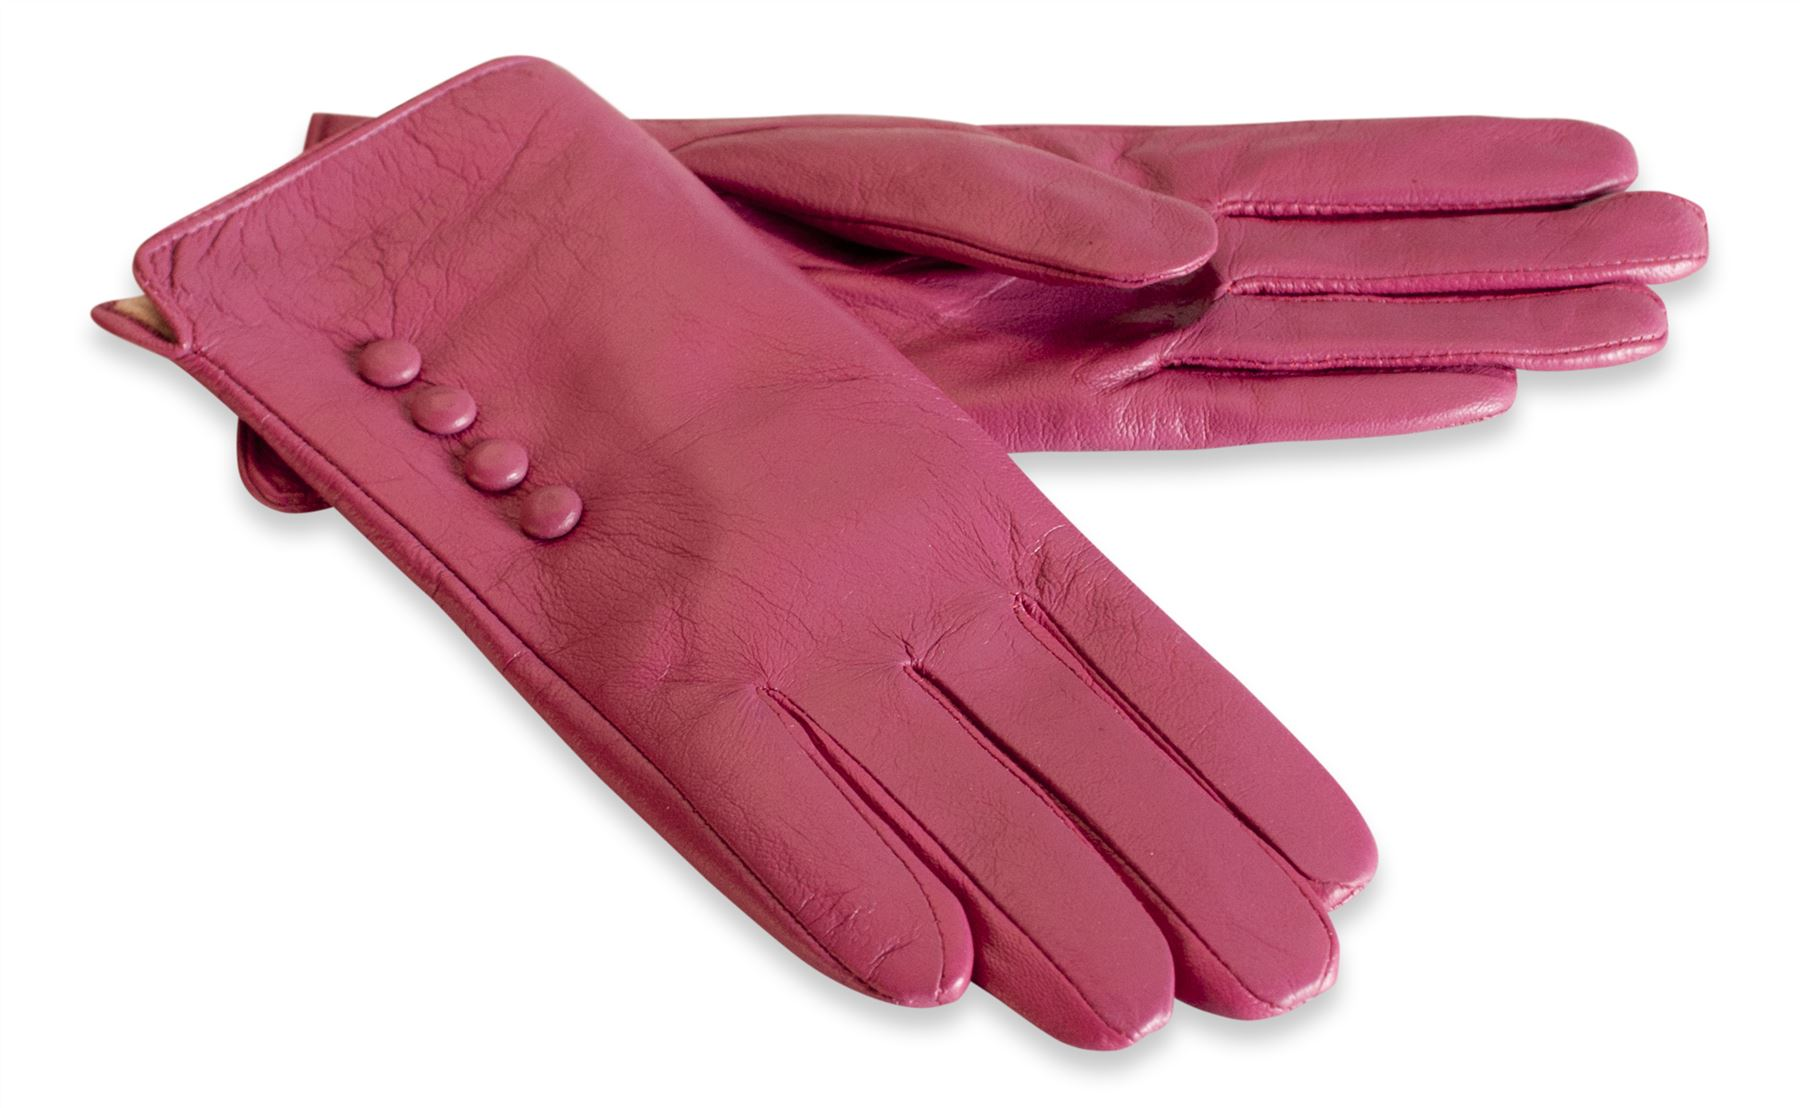 Womens leather gloves purple - Quivano Womens Soft Real Leather Gloves Four Button